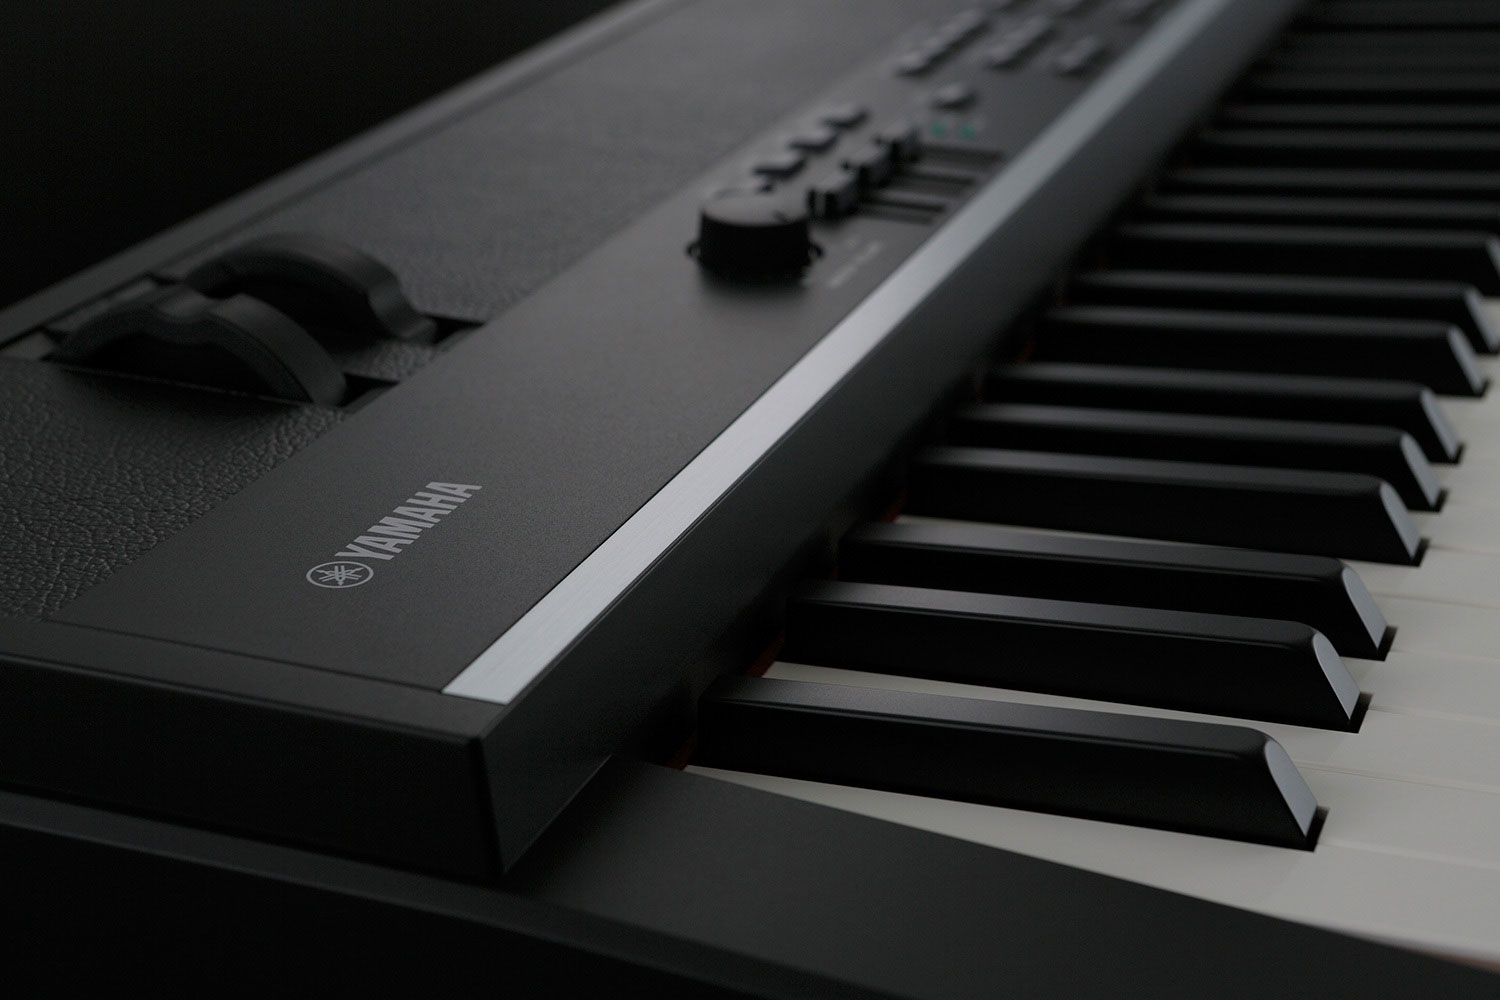 Yamaha cp4 stage image cp4 stage close2 679838 for Yamaha cp4 weight